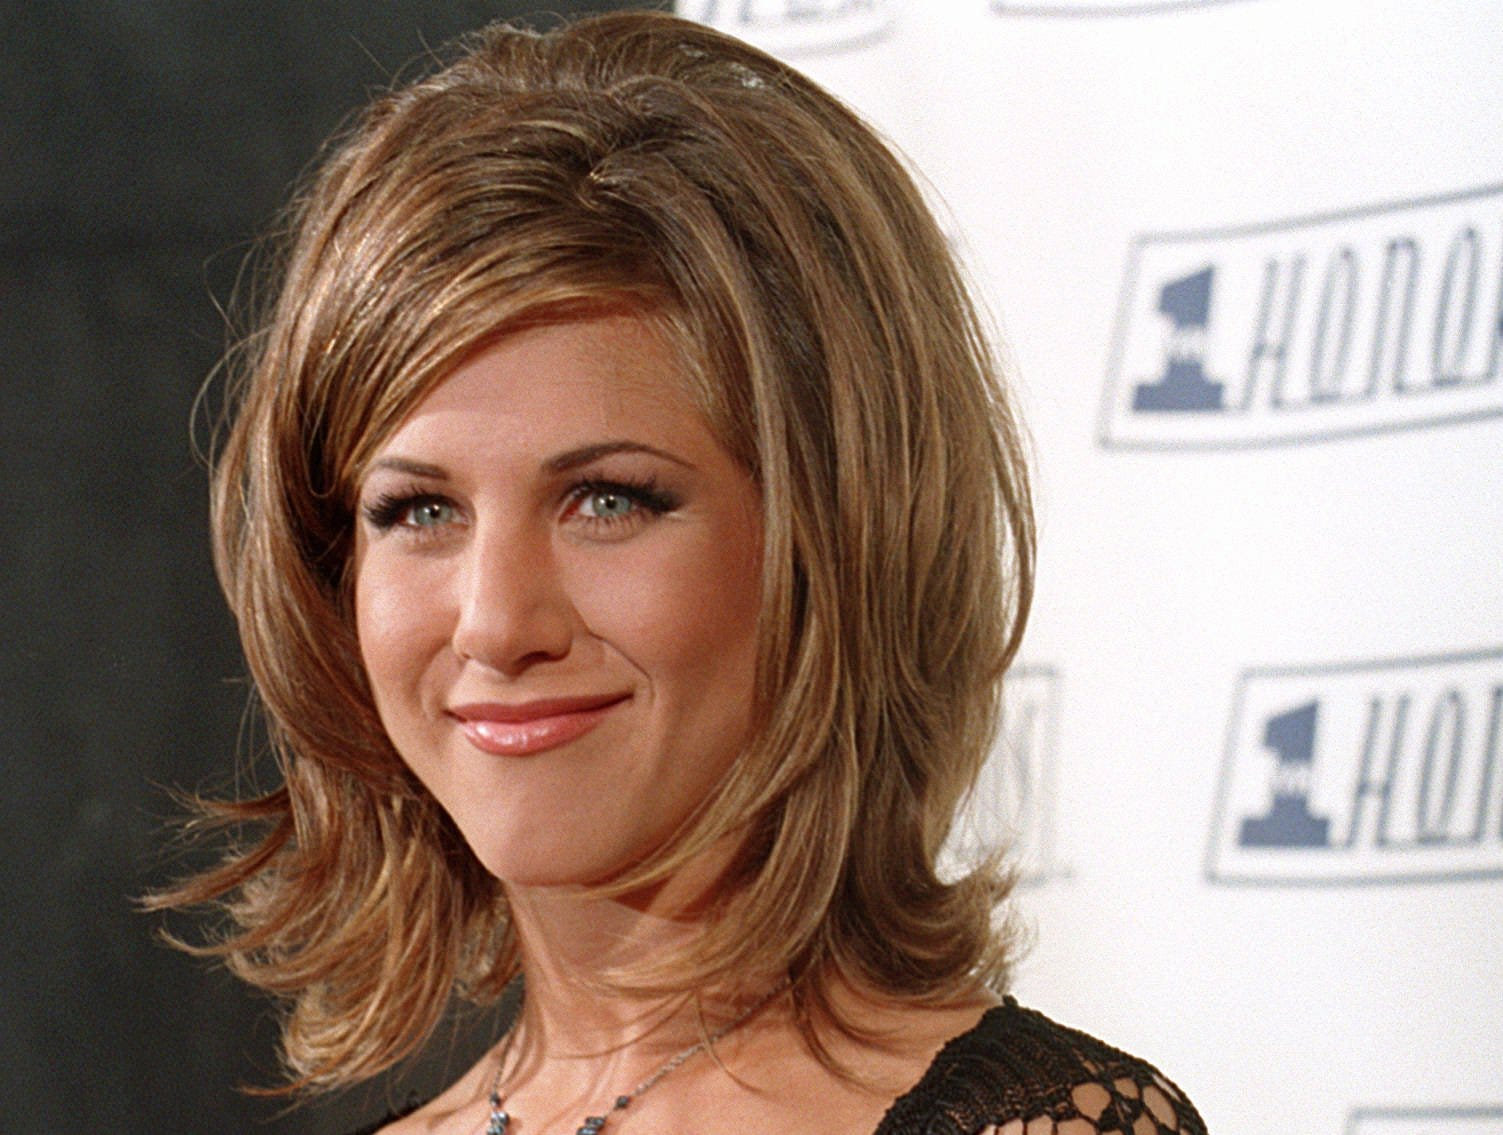 """The """"Rachel"""" was in full effect when she appeared at the VH1 Honors in 1995."""